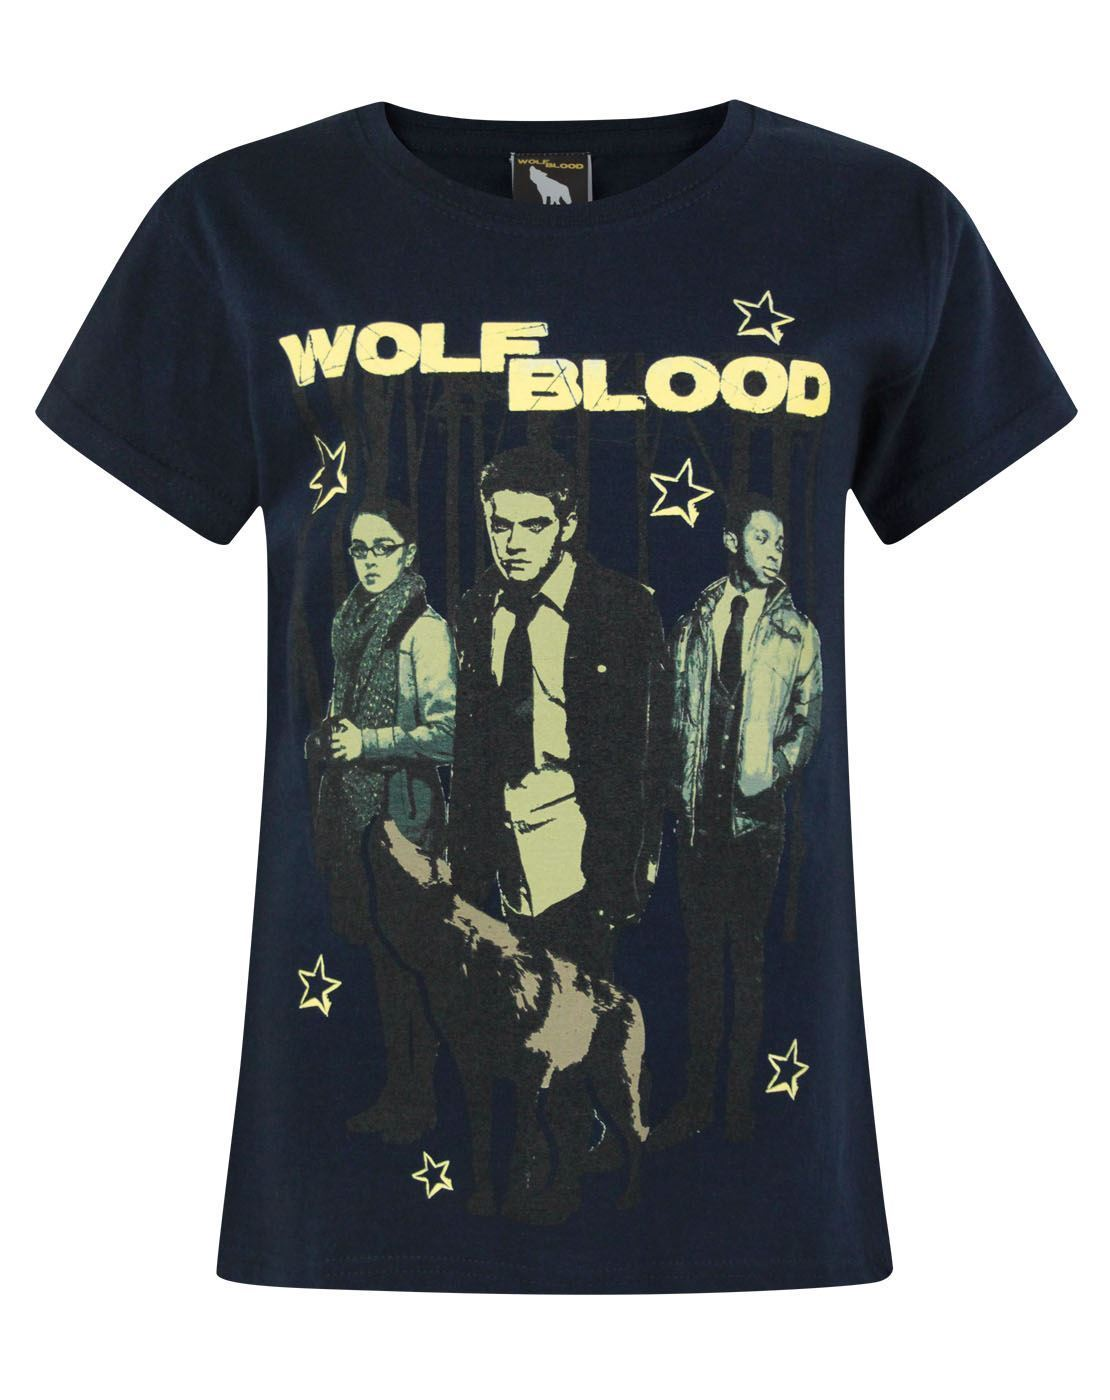 Wolfblood Characters Girl's T-Shirt